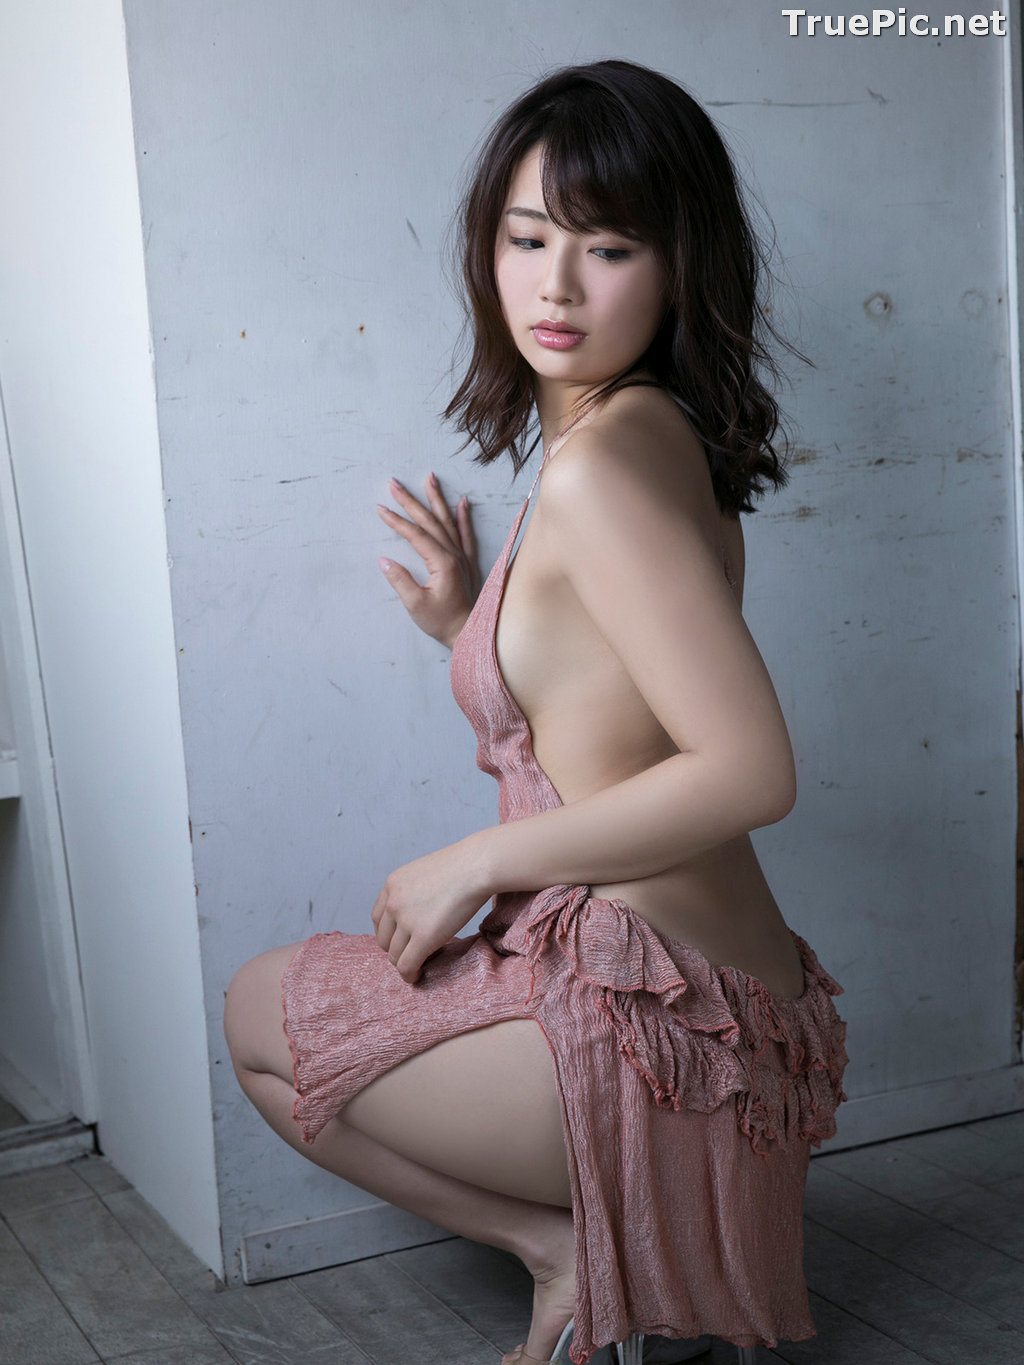 Image Japanese Actress And Model – Natsumi Hirajima (平嶋夏海) - Sexy Picture Collection 2021 - TruePic.net - Picture-2